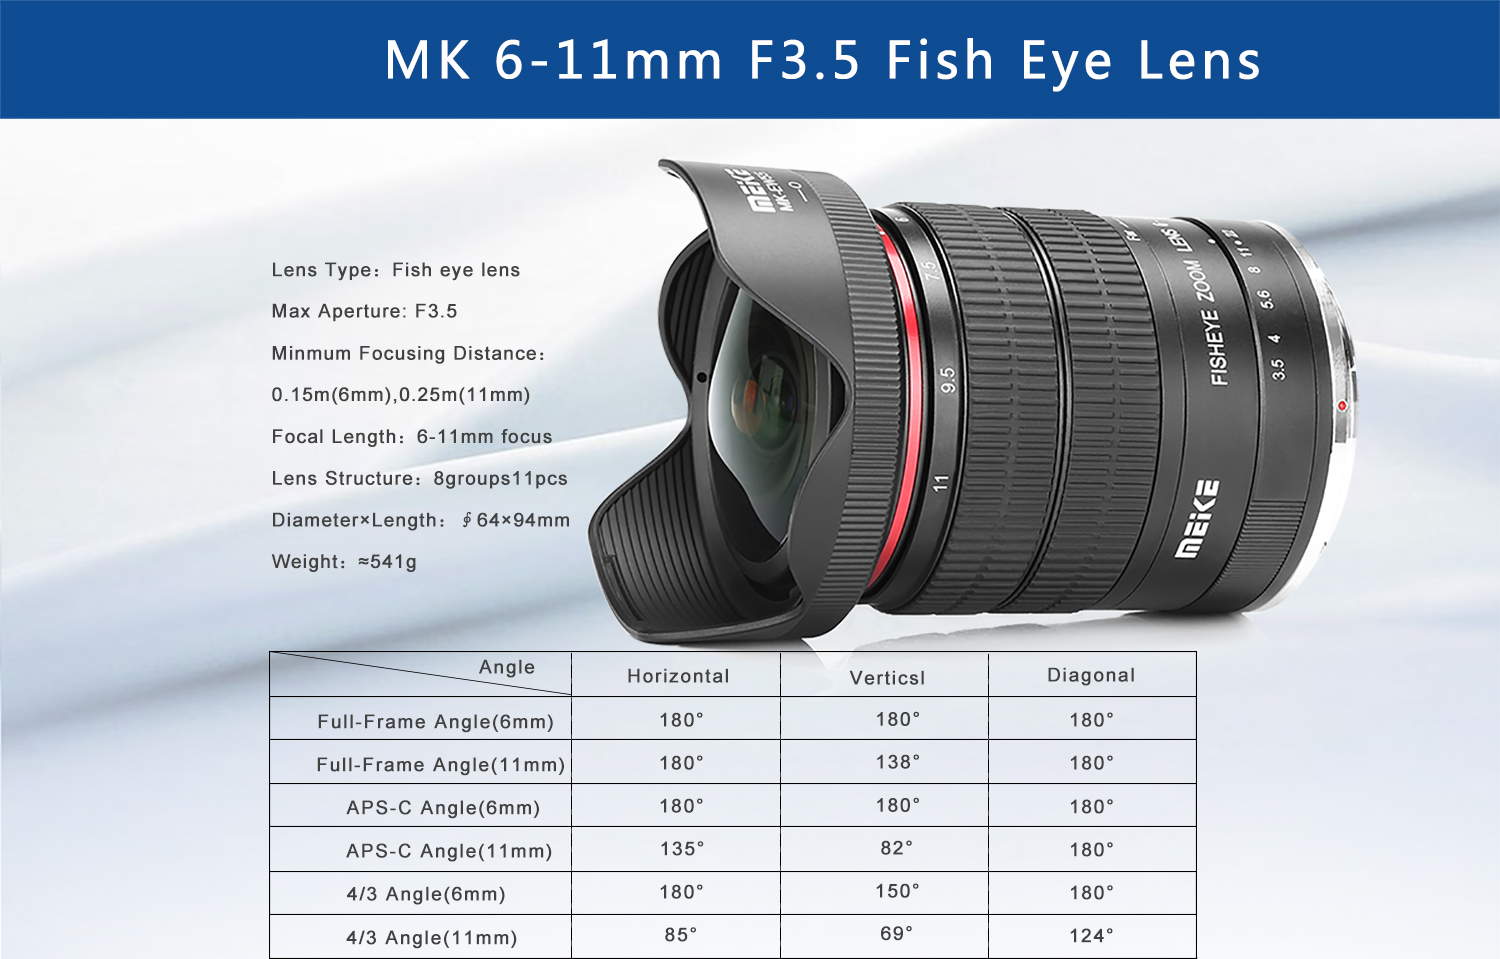 meike 6-11mm fisheye lens specs